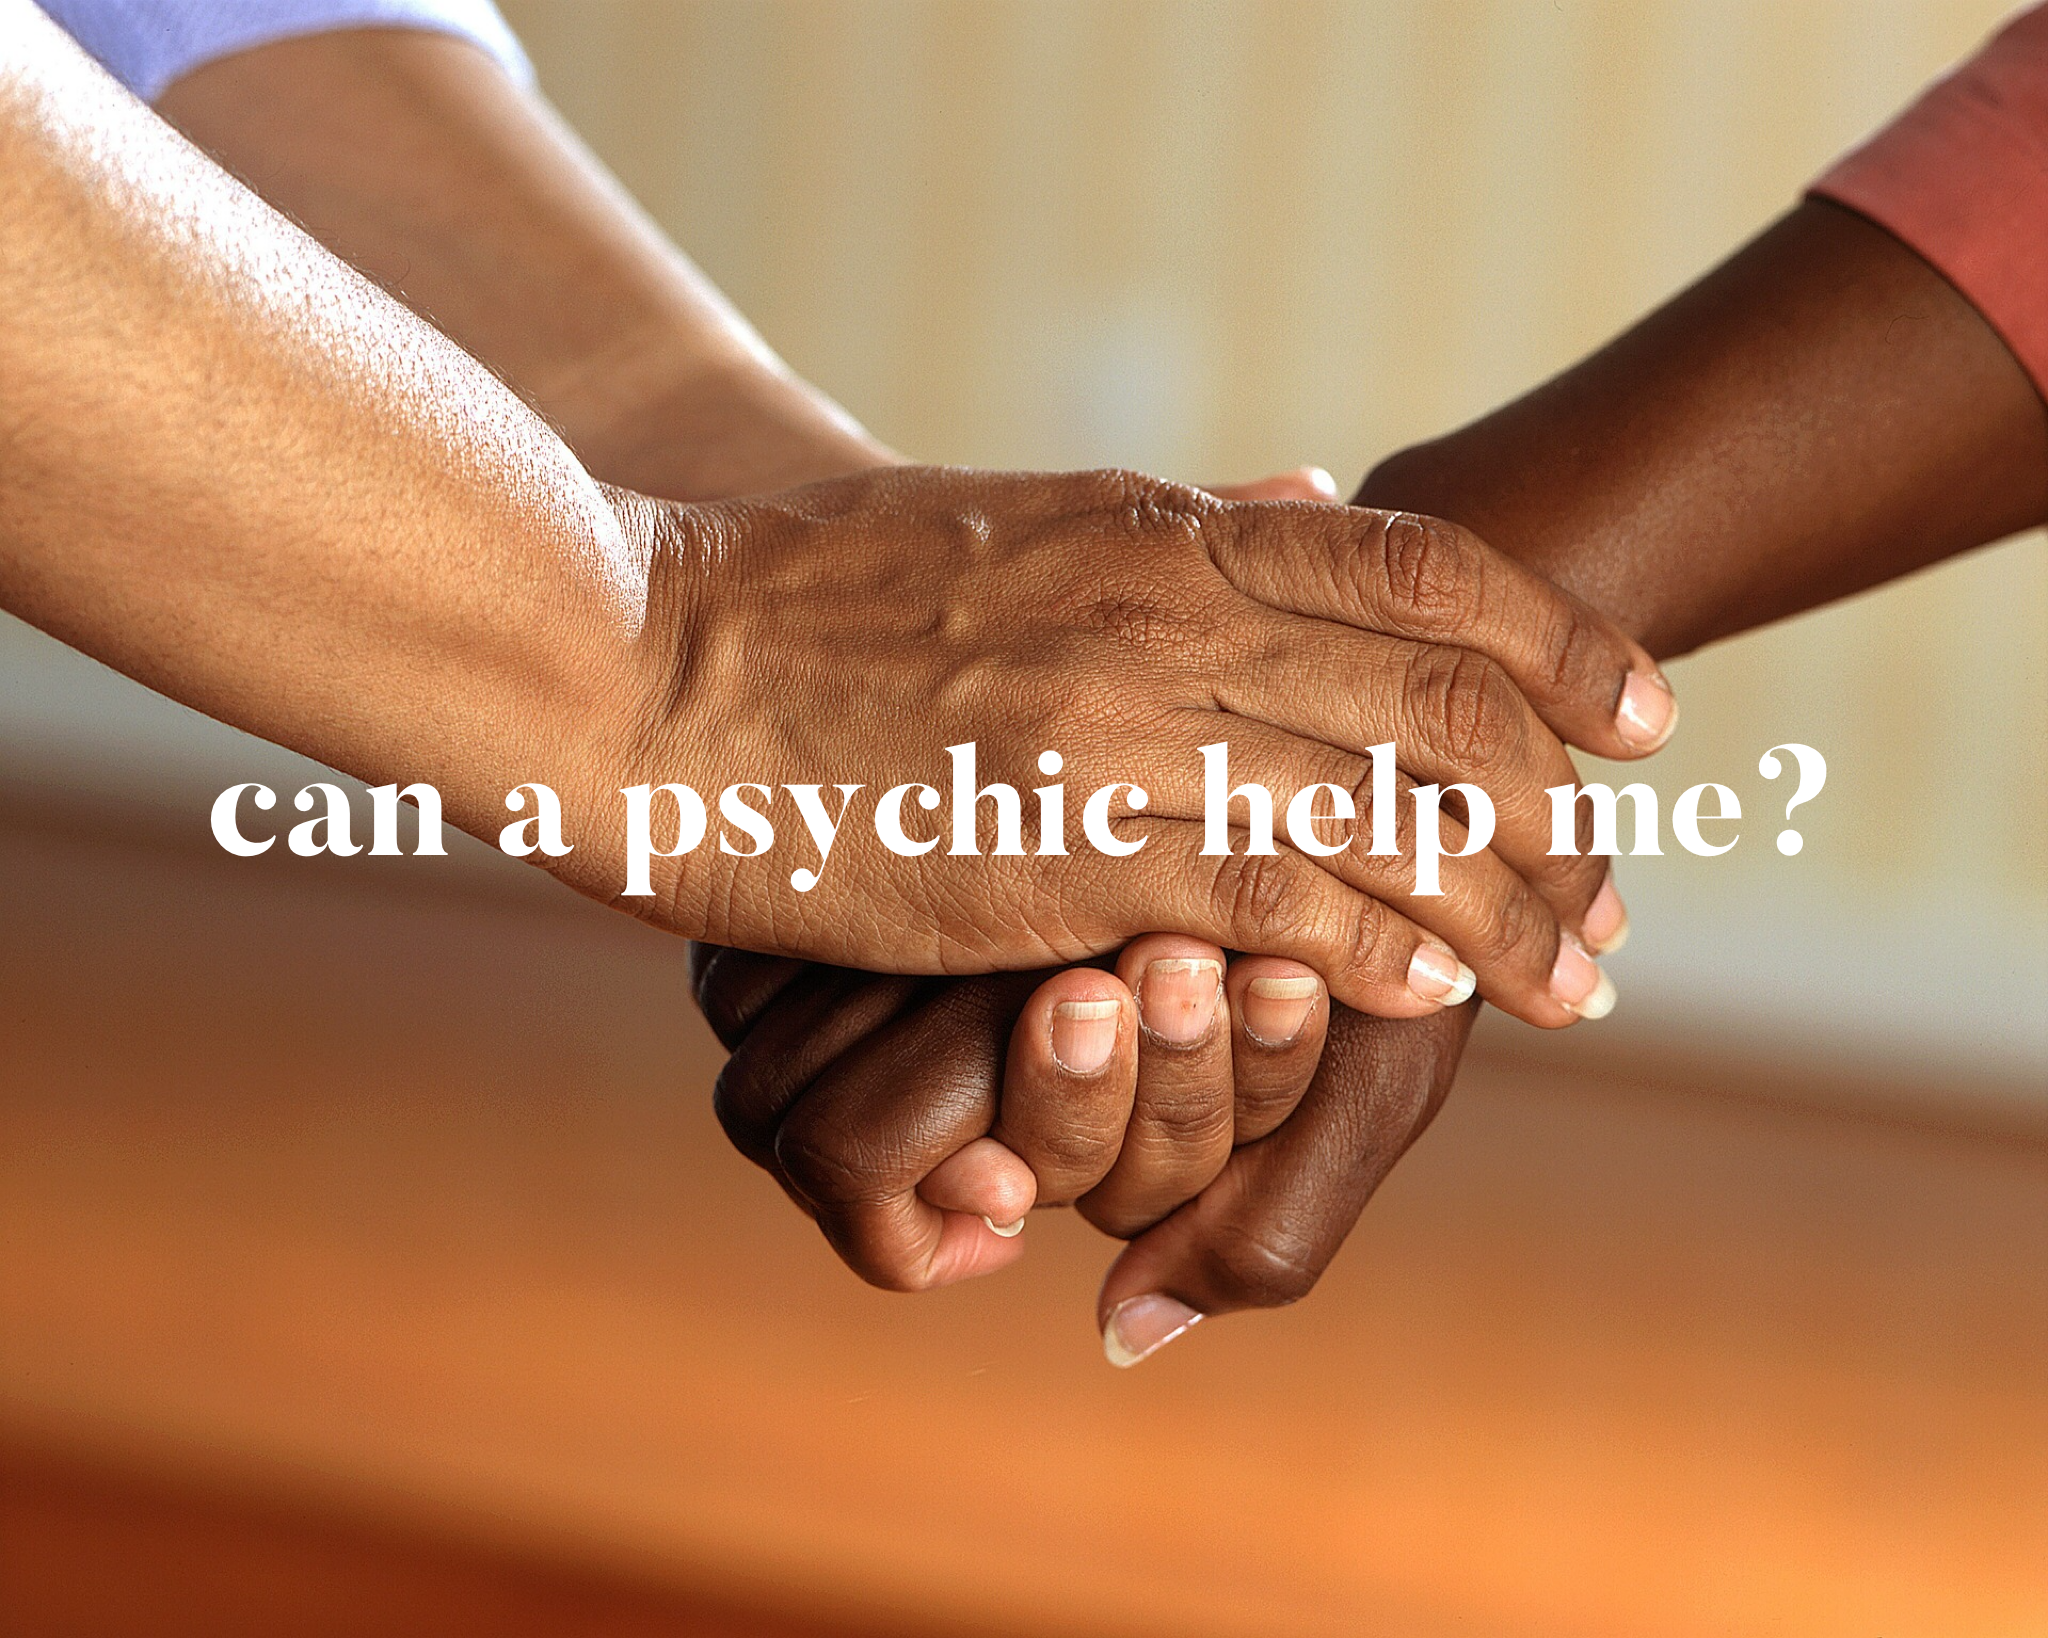 Can a psychic help me? What type of psychic should I choose?